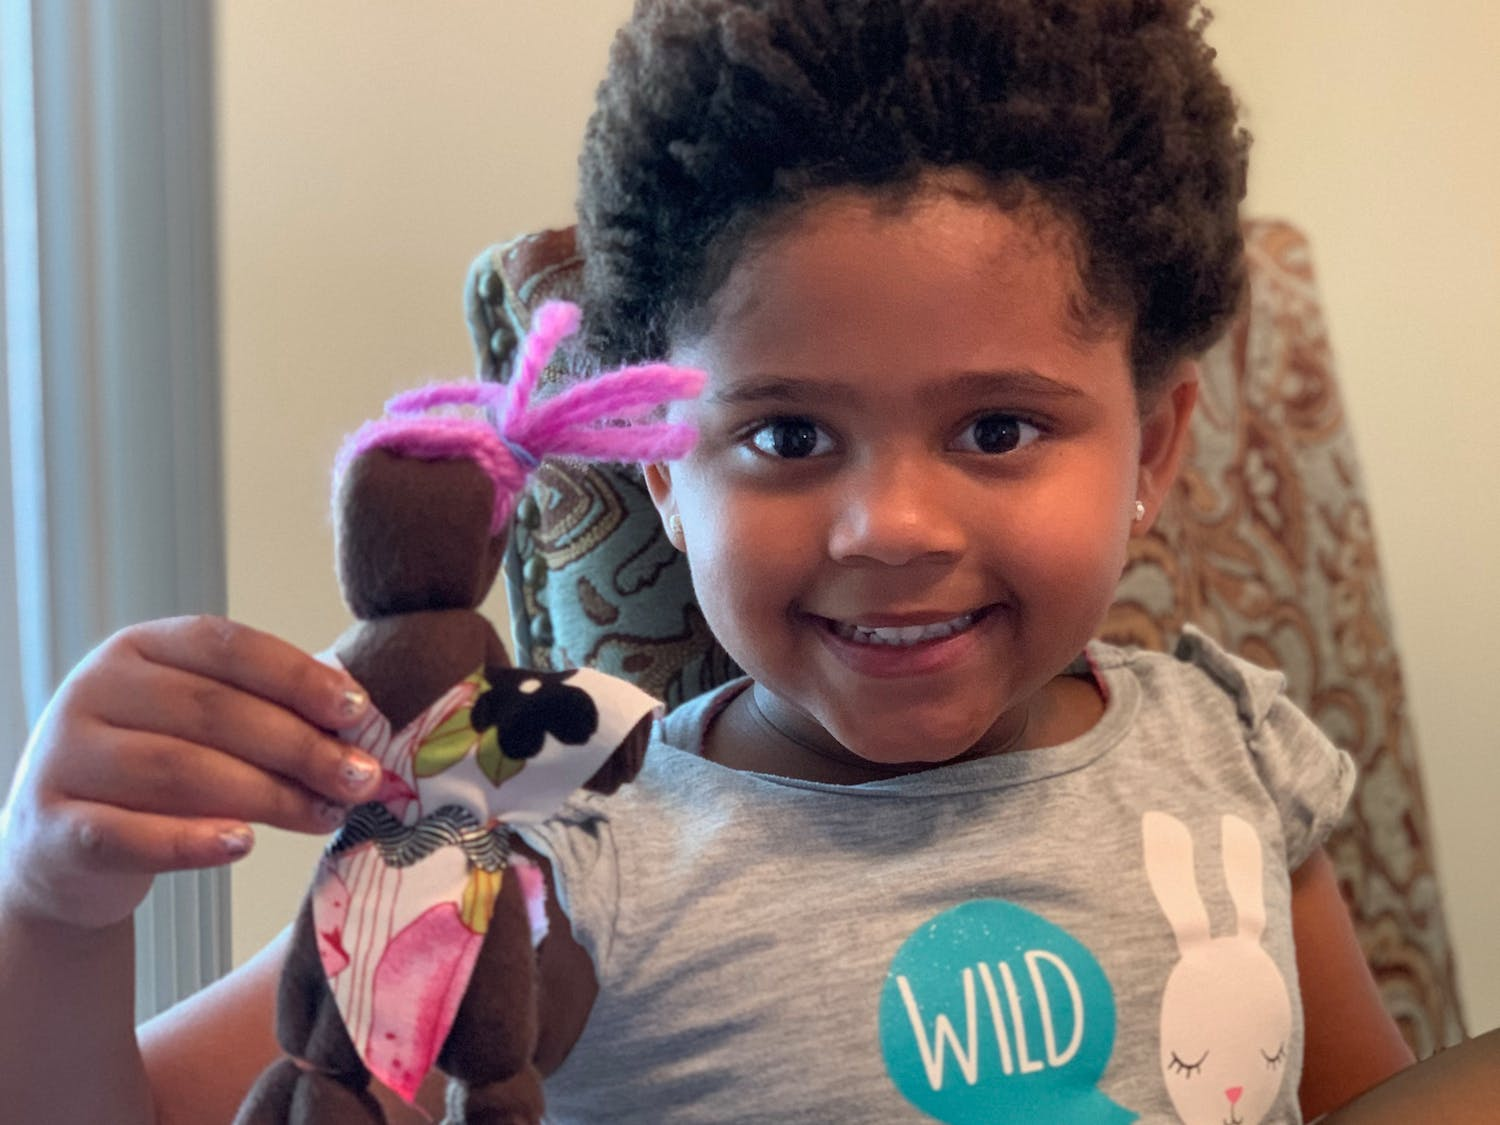 Madeline Exavier has never found a doll that looks like her. But with a Rad Doll Kit, she made her own.